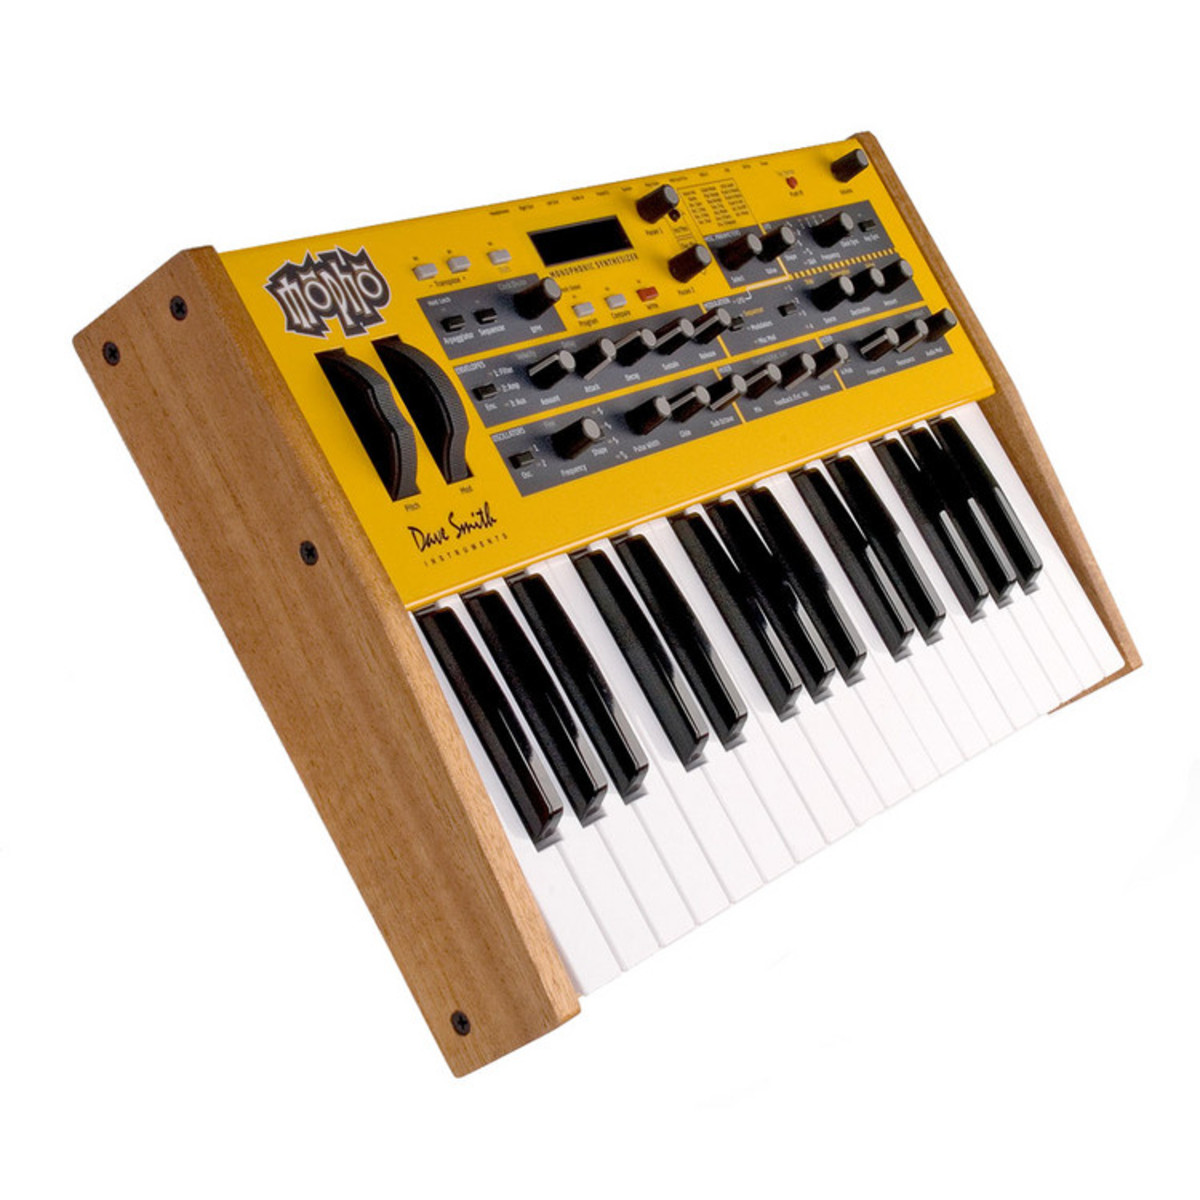 dave smith instruments mopho keyboard synthesizer nearly new at. Black Bedroom Furniture Sets. Home Design Ideas